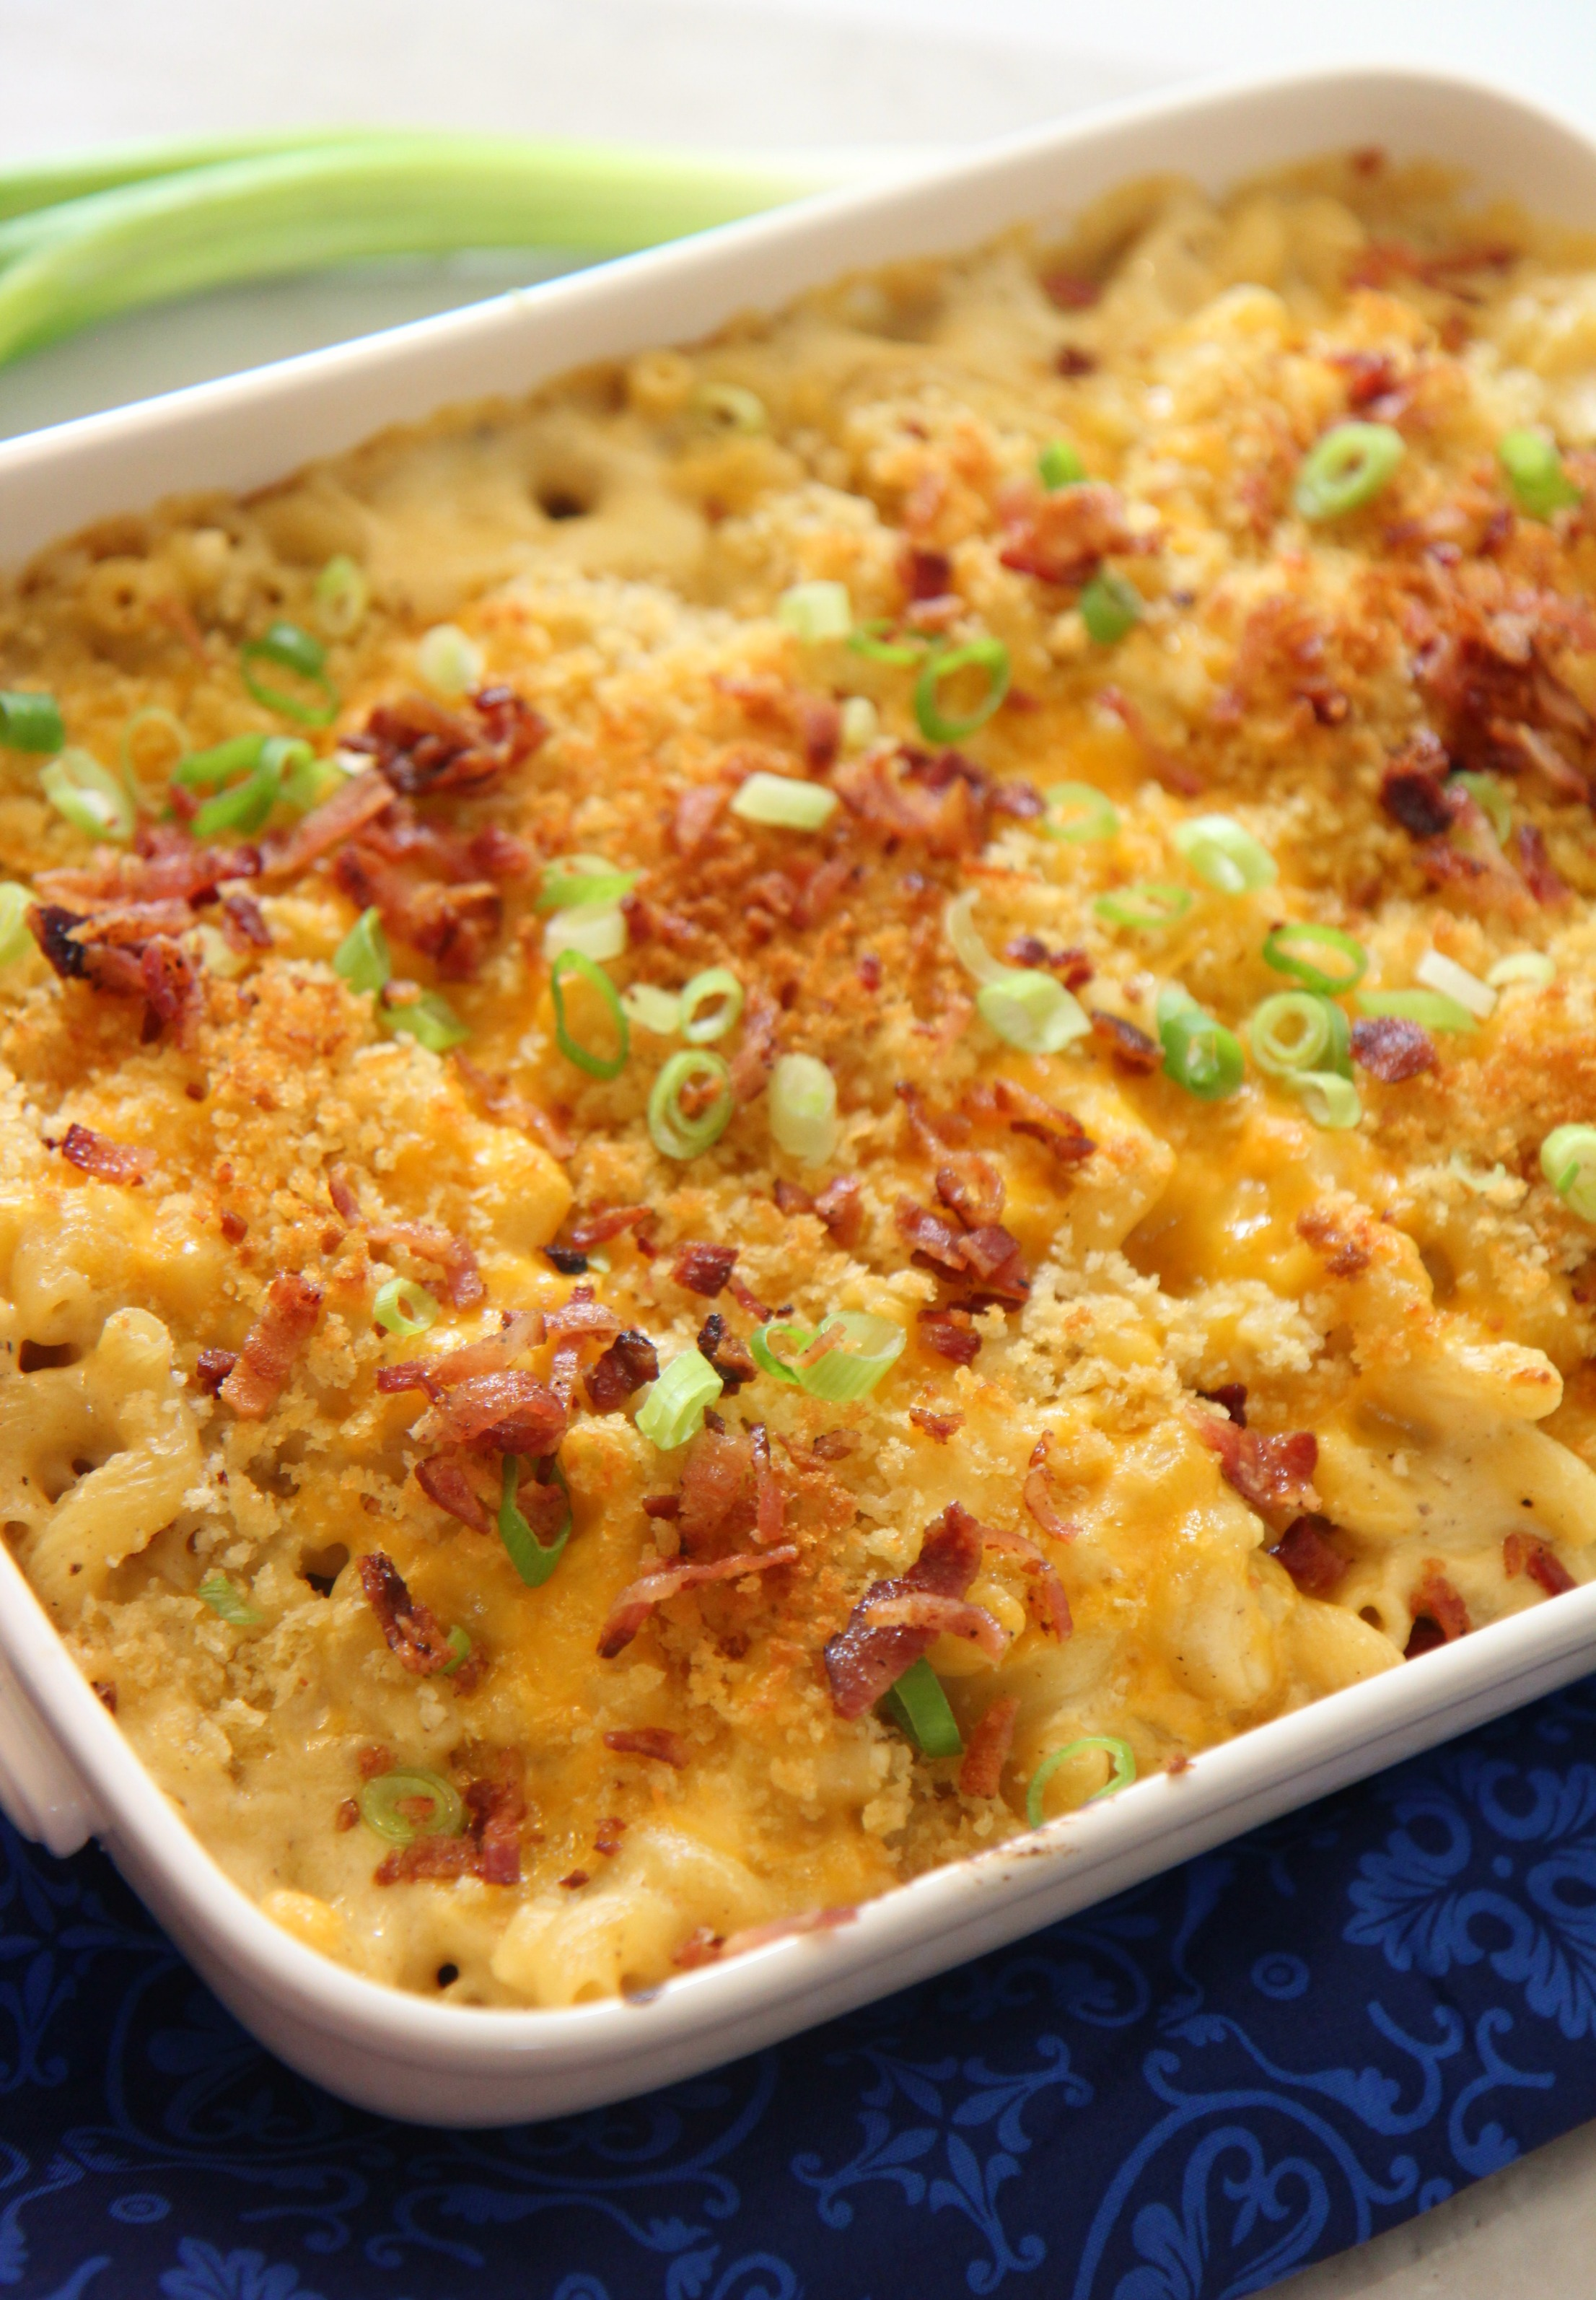 This mac and cheese is exploding with flavor from the bacon cooked through the cheese sauce.